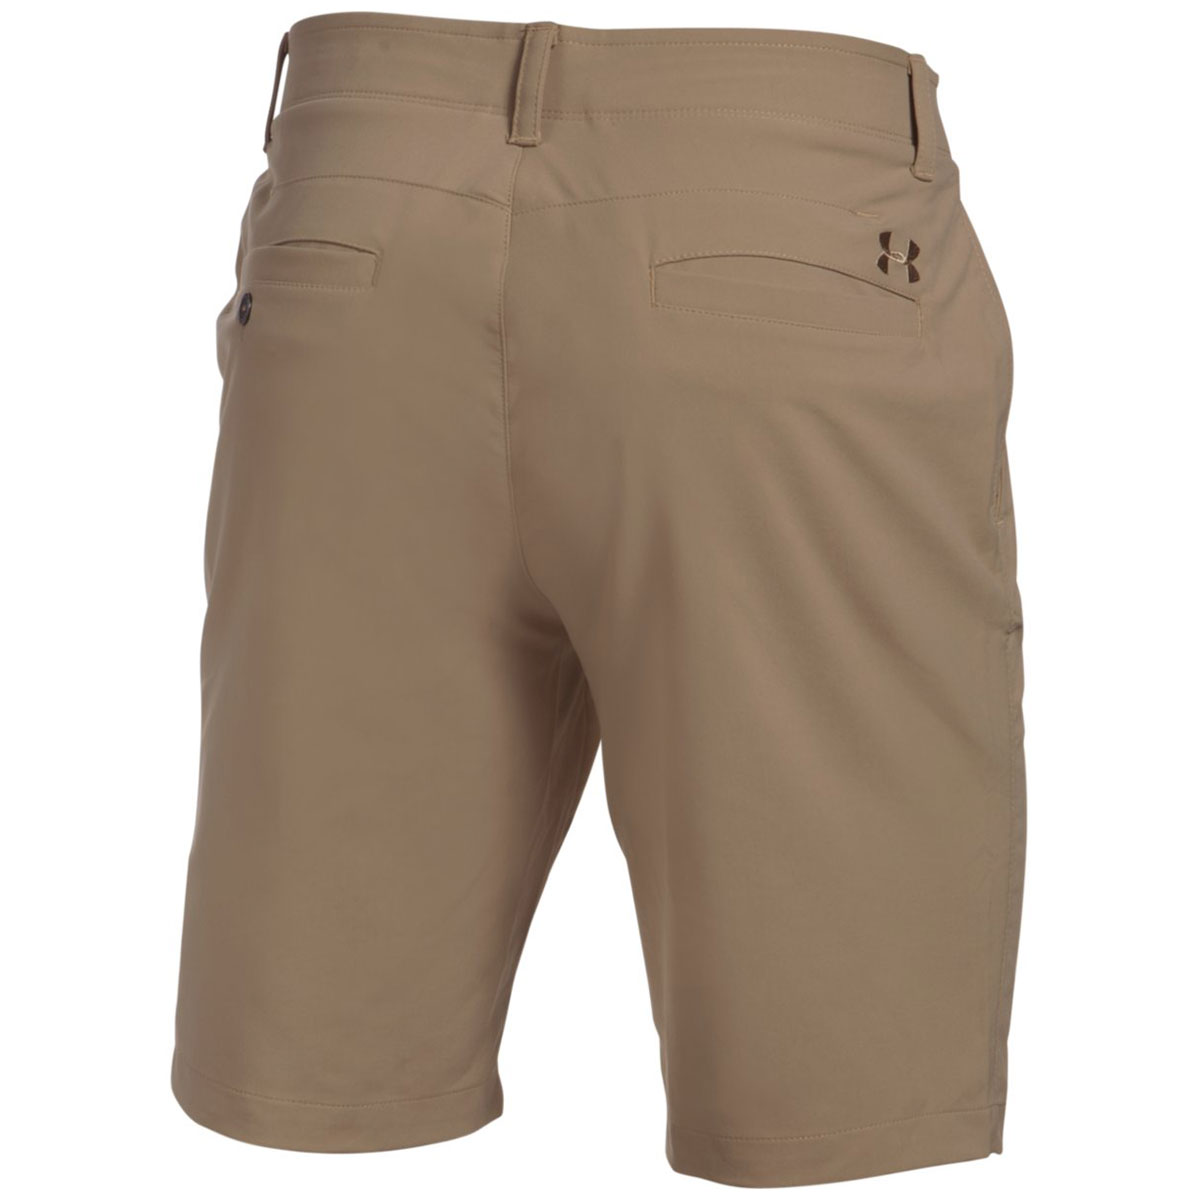 Under-Armour-Mens-UA-Match-Play-Taper-Tech-Performance-Golf-Shorts-29-OFF-RRP Indexbild 11